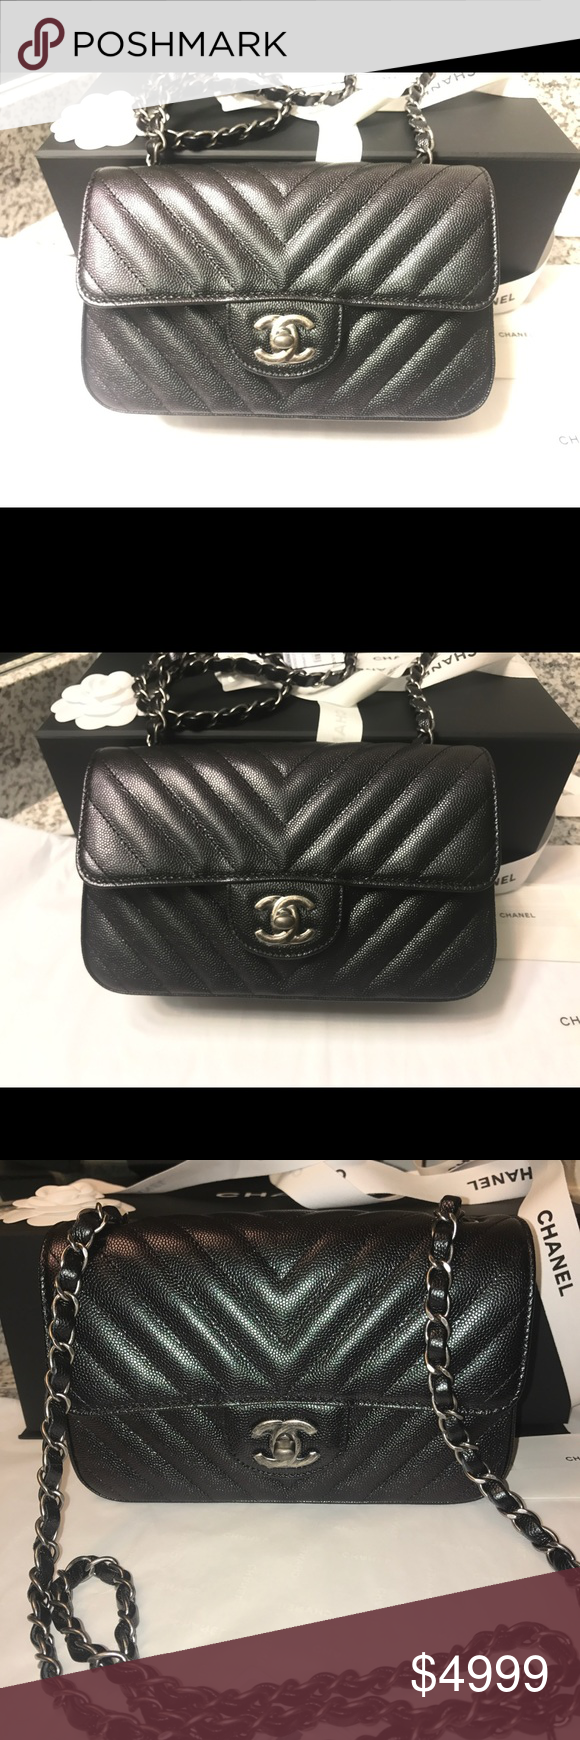 2761563baf73 NEW 17B Iridescent mini flap Authentic CHANEL iridescent black caviar  leather chevron mini classic flap bag